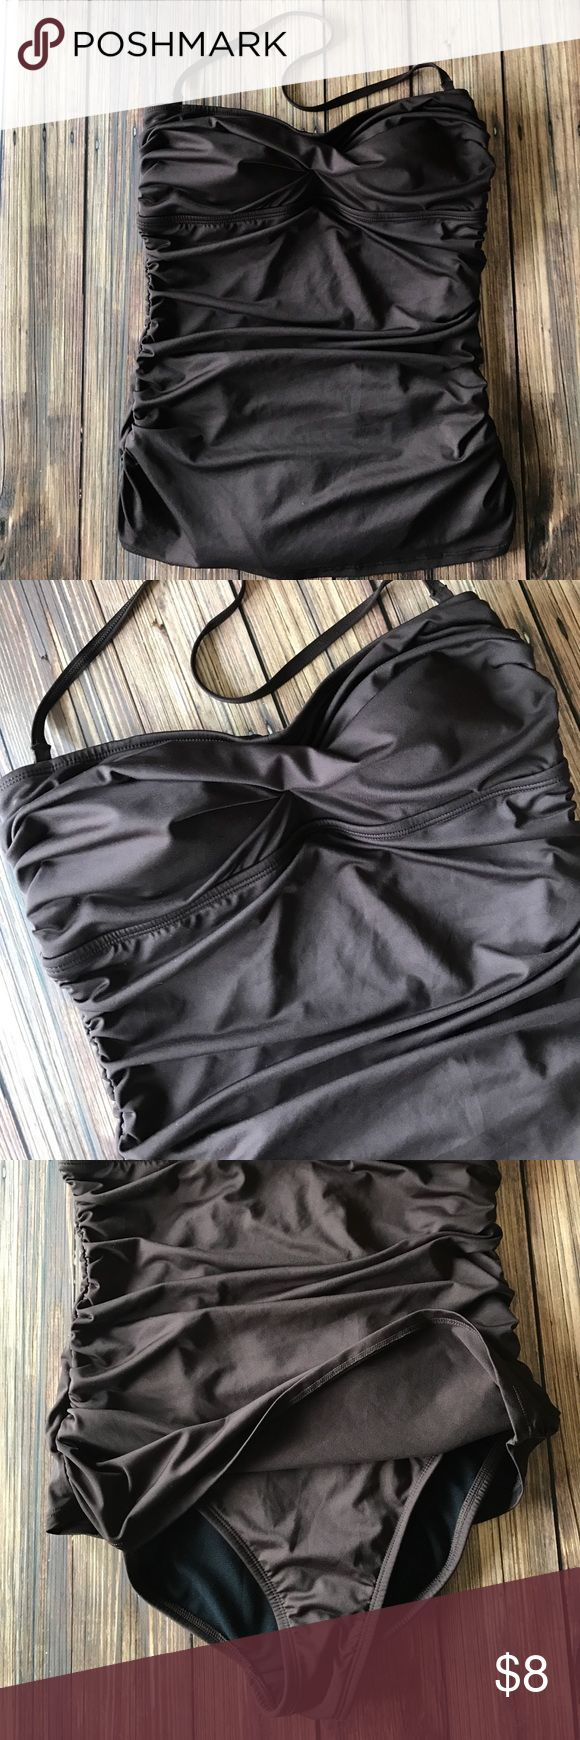 Jantzen Brown One Piece Tie Back Swimsuit Size 12 Jantzen once piece chocolate brown swimsuit with tie back for excellent fit! Side rouched and slightly skirted. Very flattering! Size 12. Bundle and save! Jantzen Swim One Pieces